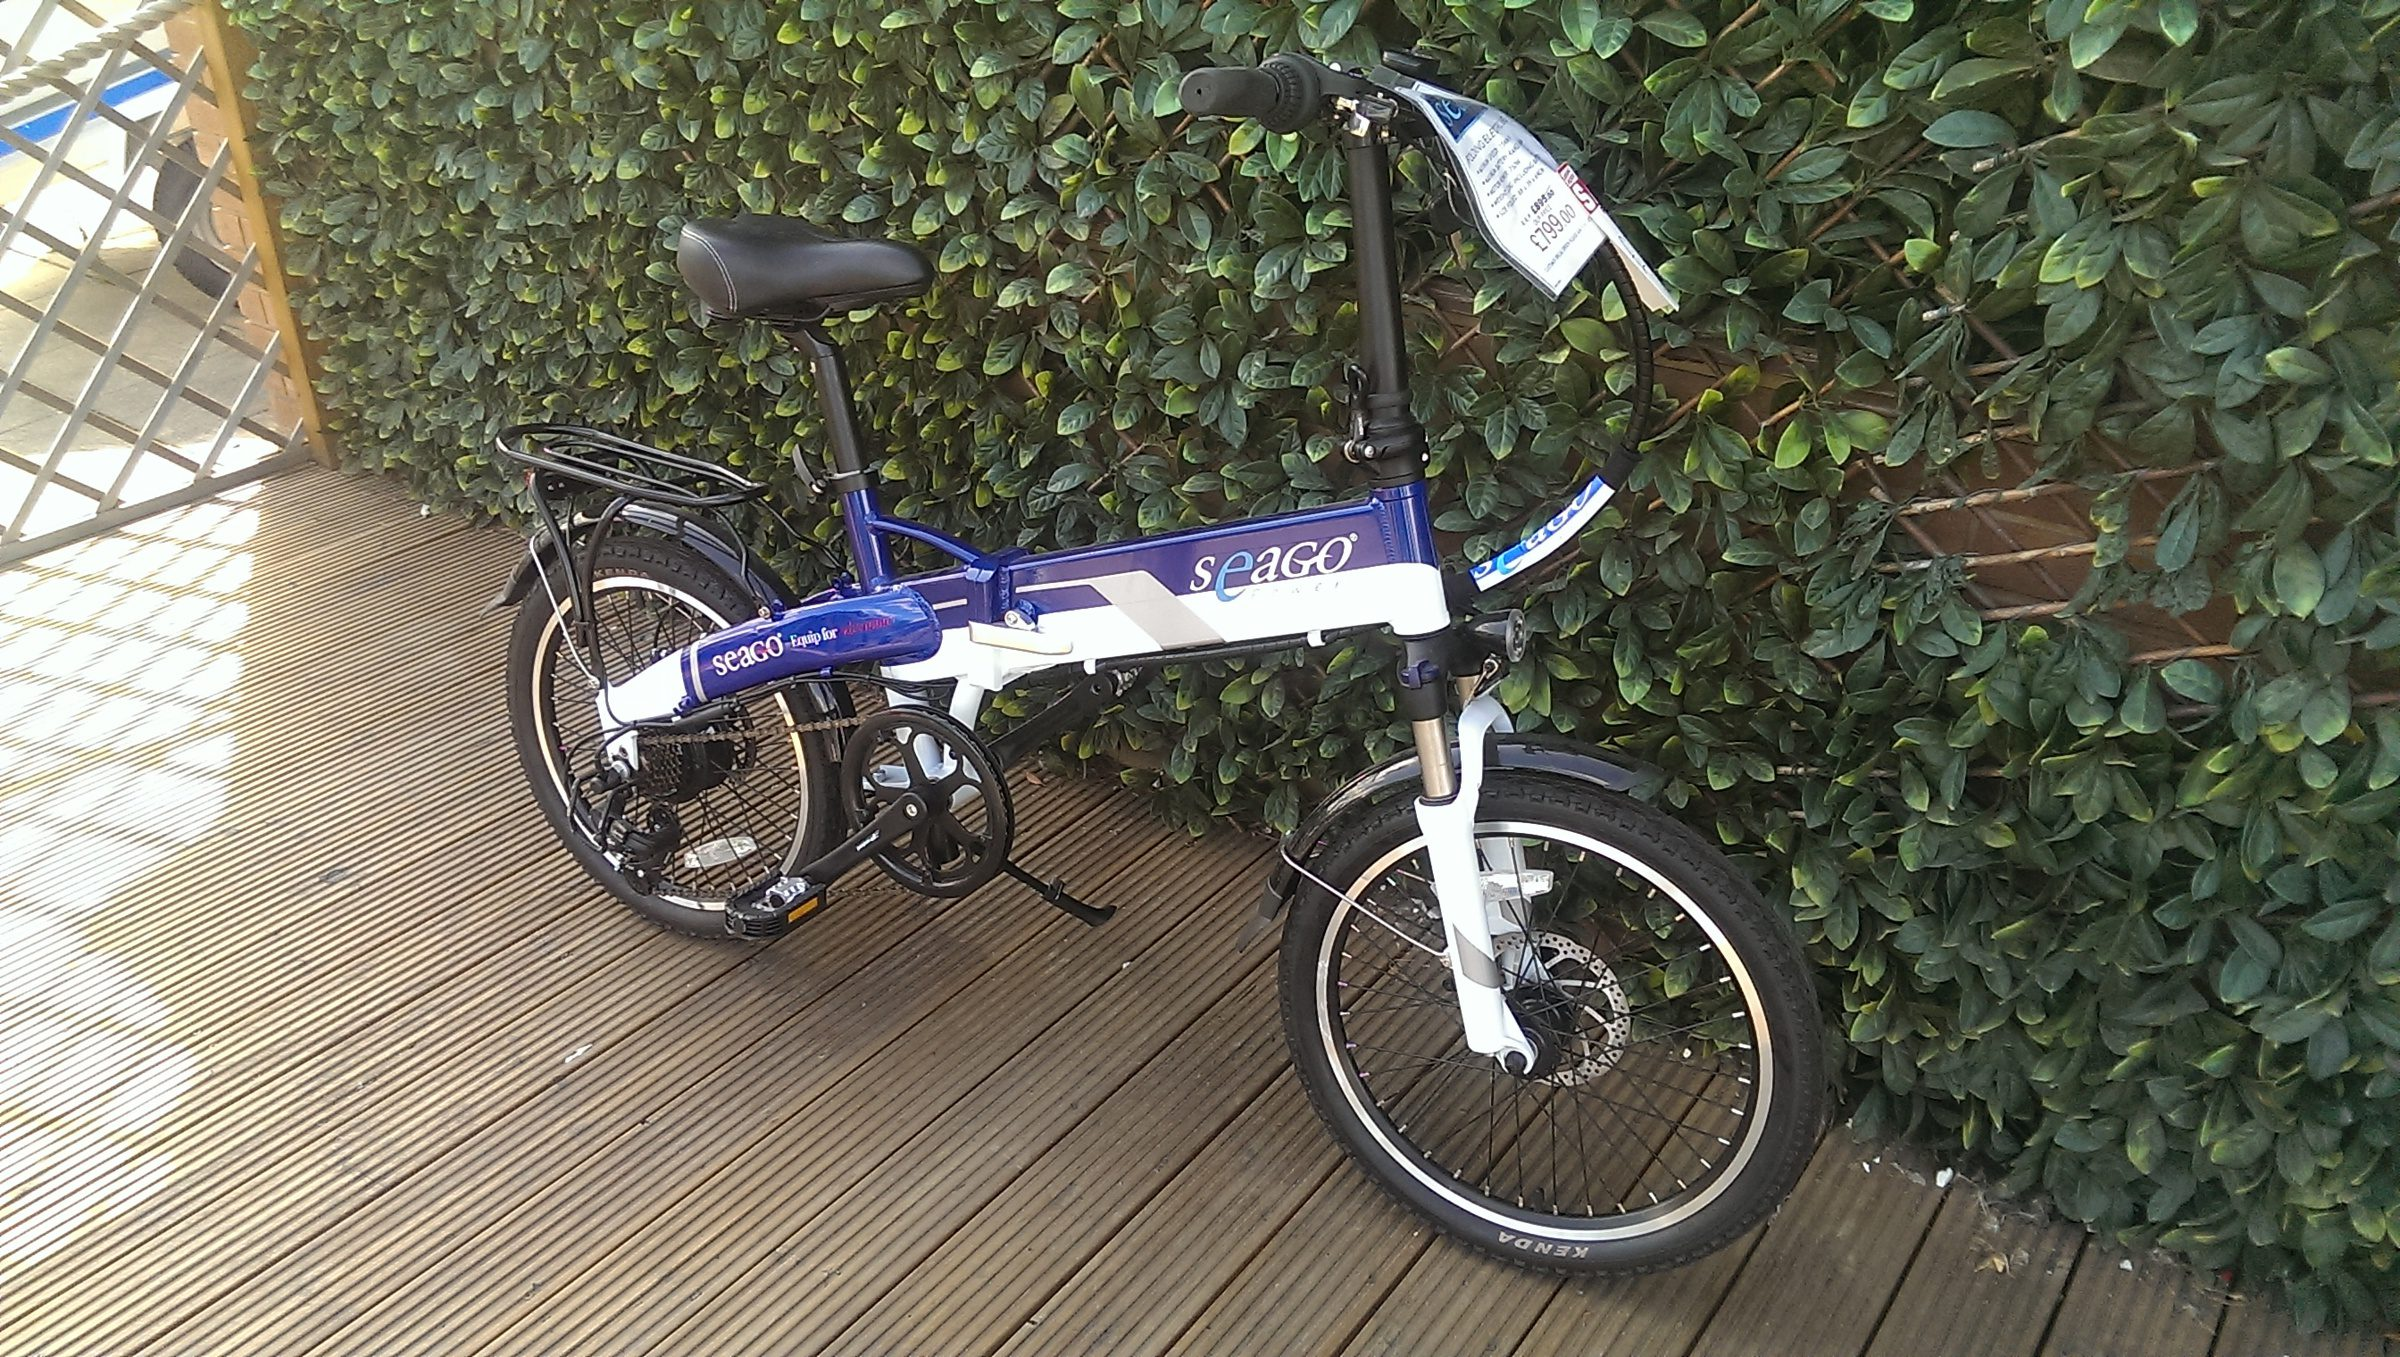 Seago Folding Electric Bike - Blue / White